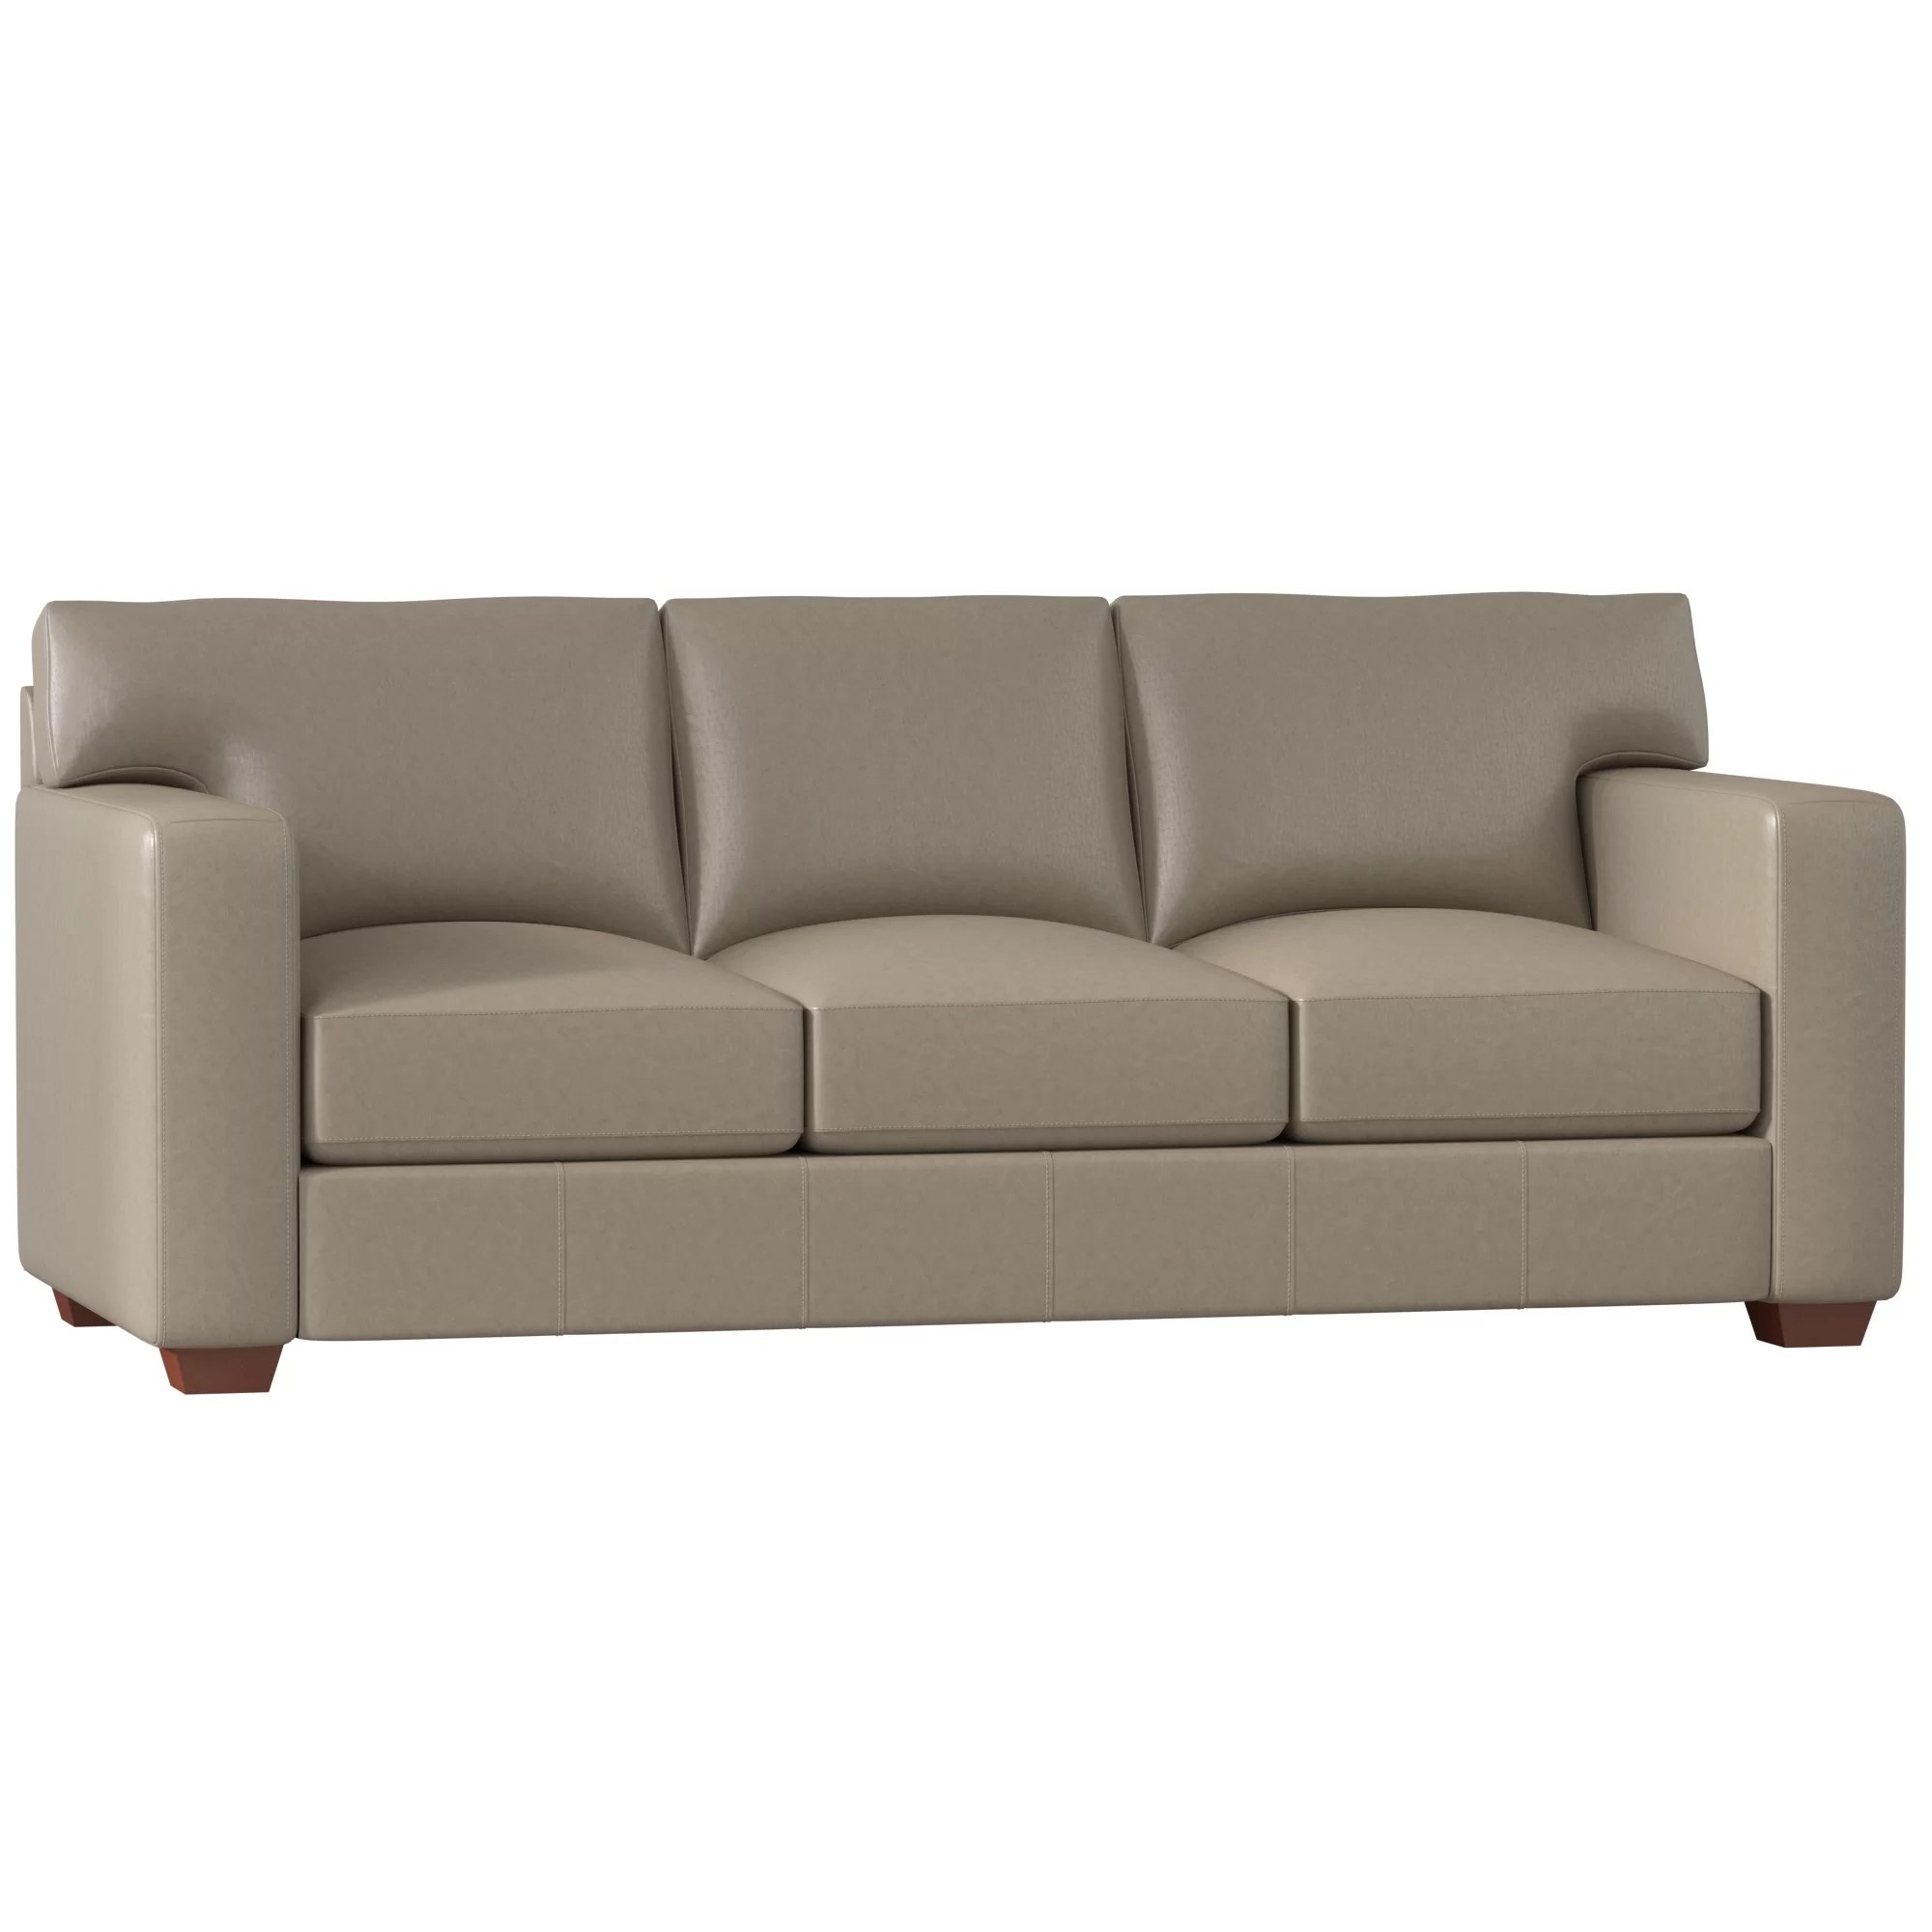 Brown Real Leather Couch Pratt Leather Sofa